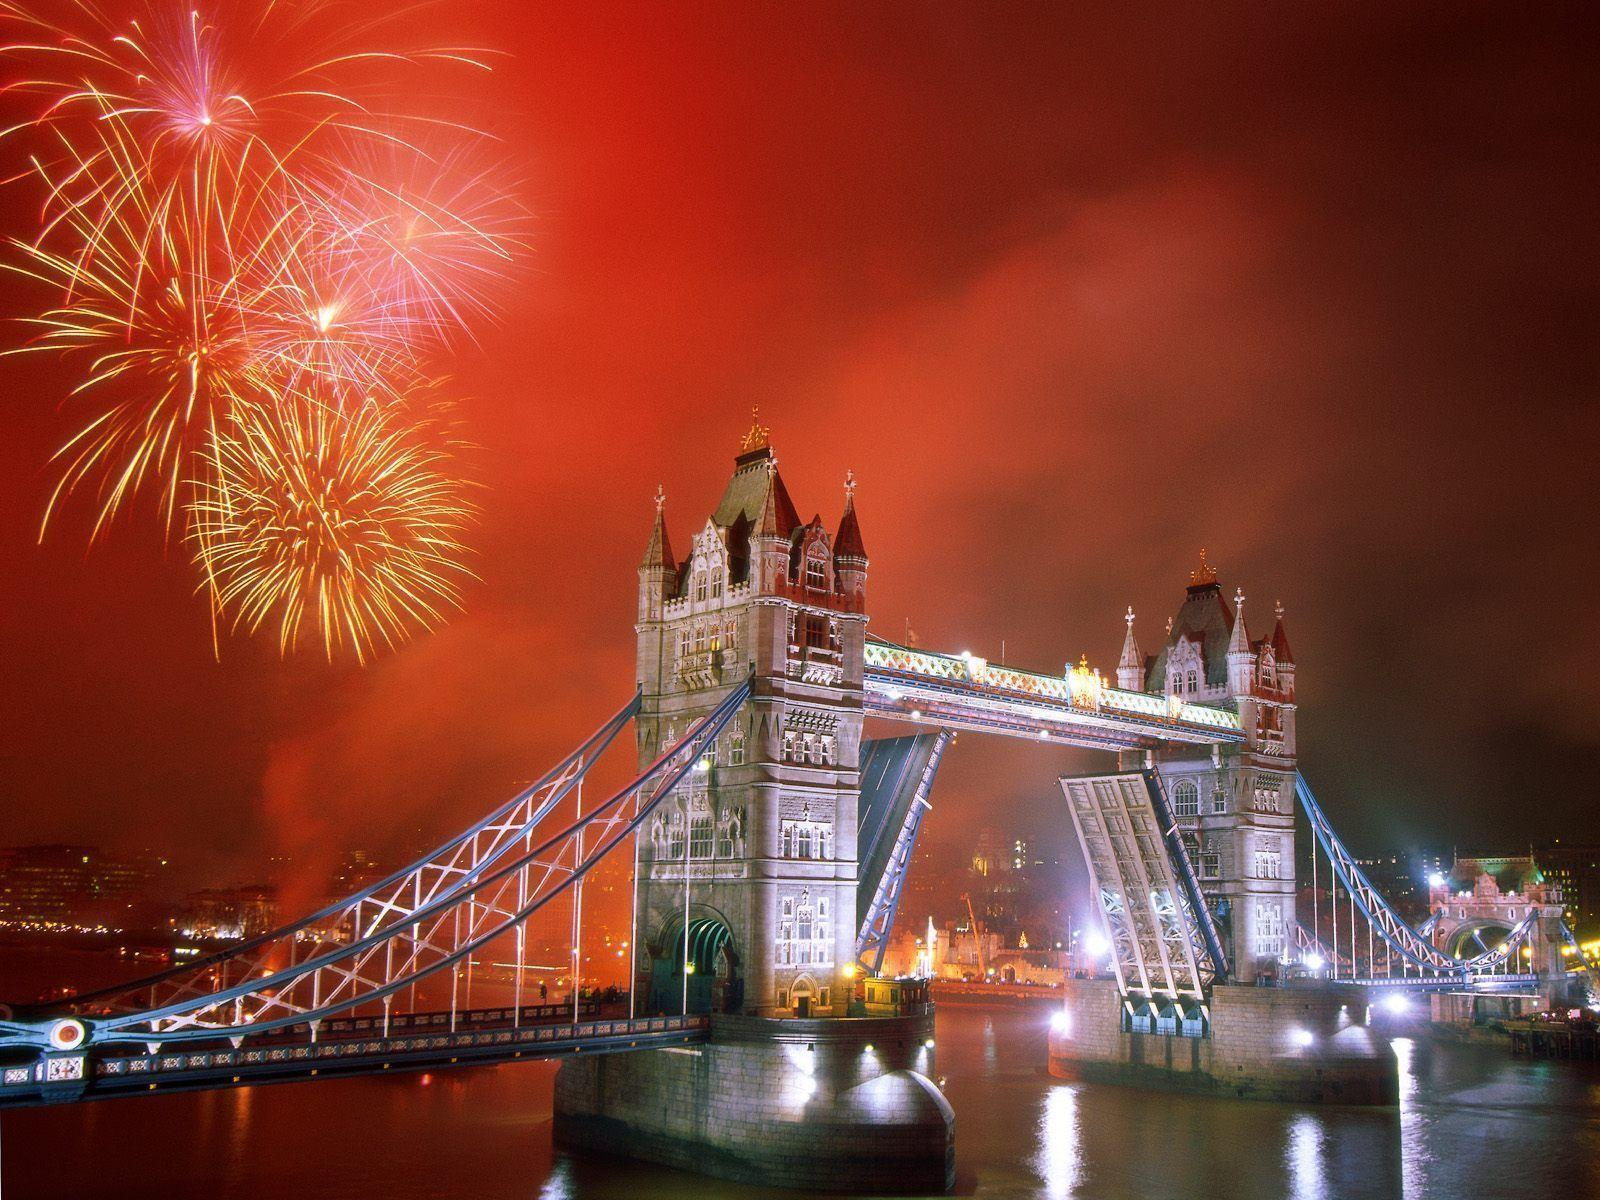 Light up the Night, Tower Bridge, London, England Wallpapers